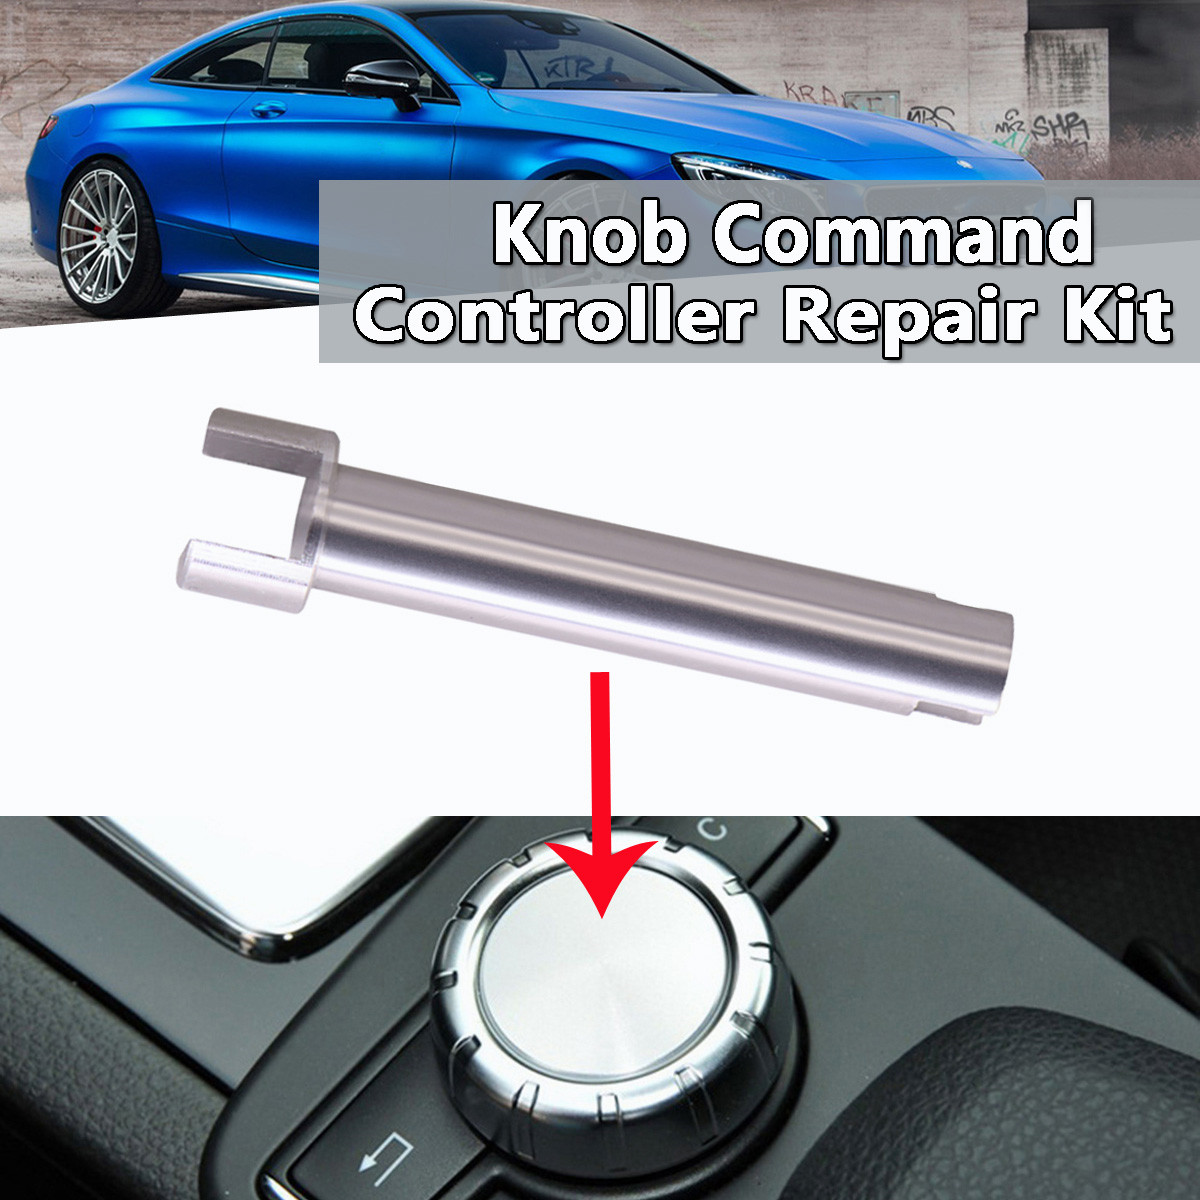 New Knob Command Console Controller Rotary Switch Button Scroll Knob Shaft Repair Fix Kit Universal For Benz W204 X204 W212 W218 53000459